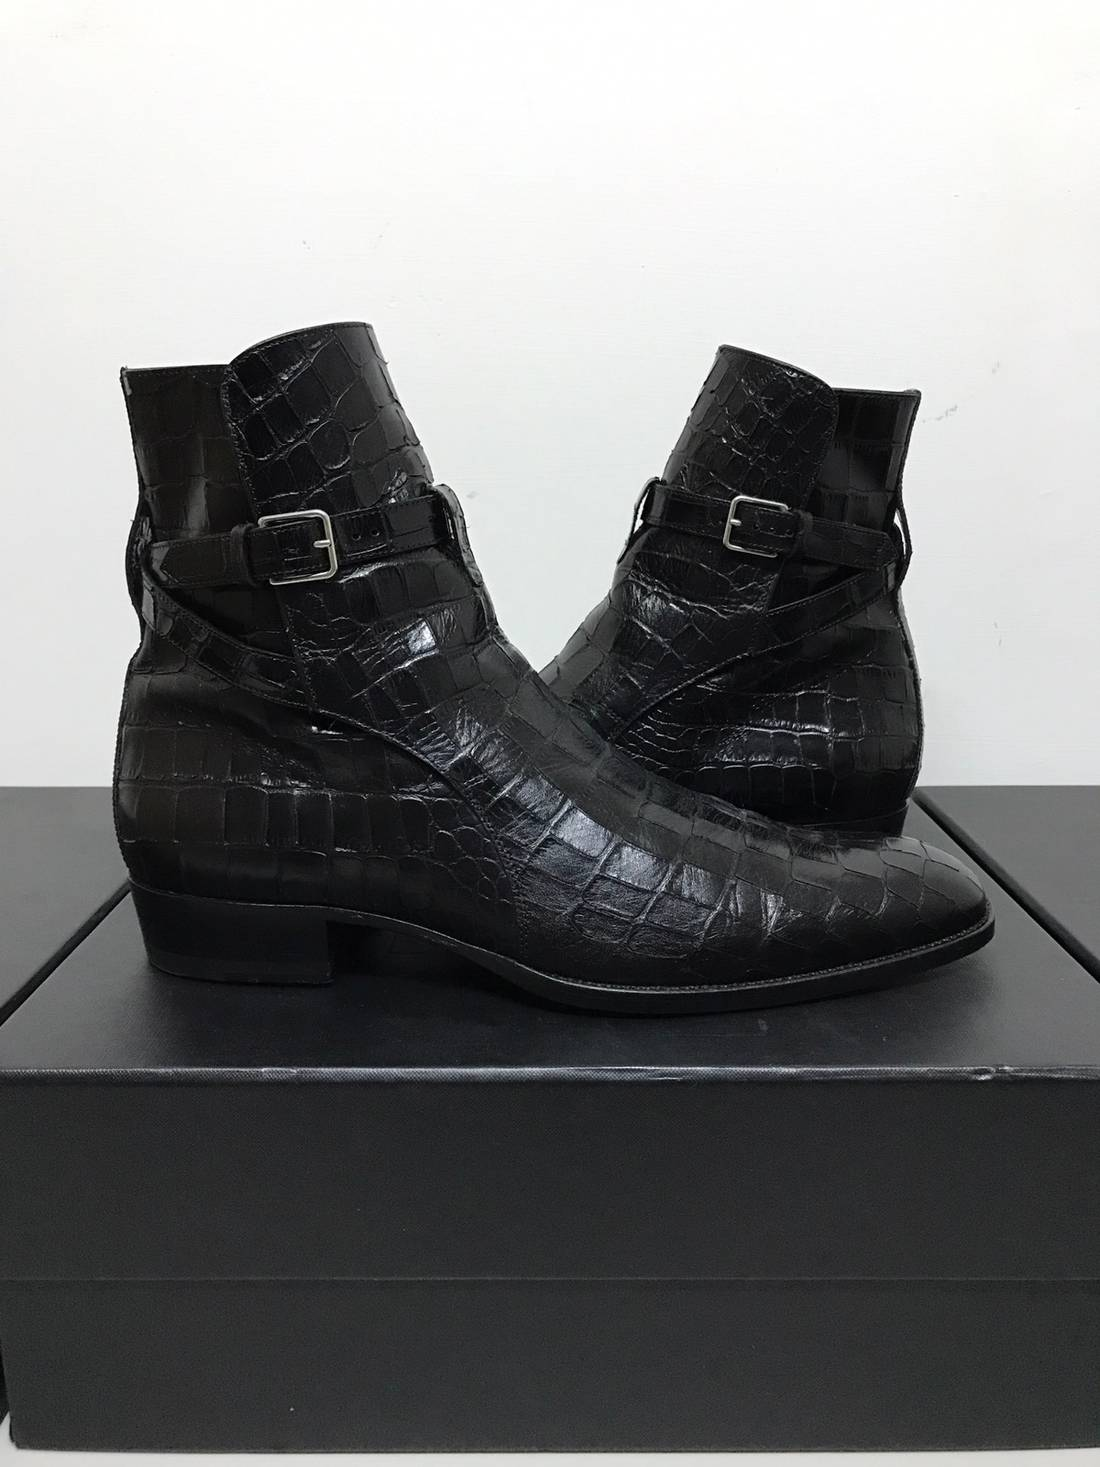 Wyatt 30 Jodhpur boots - Black Saint Laurent Purchase Online Cheap Professional Recommend 2YJQnVMOn6